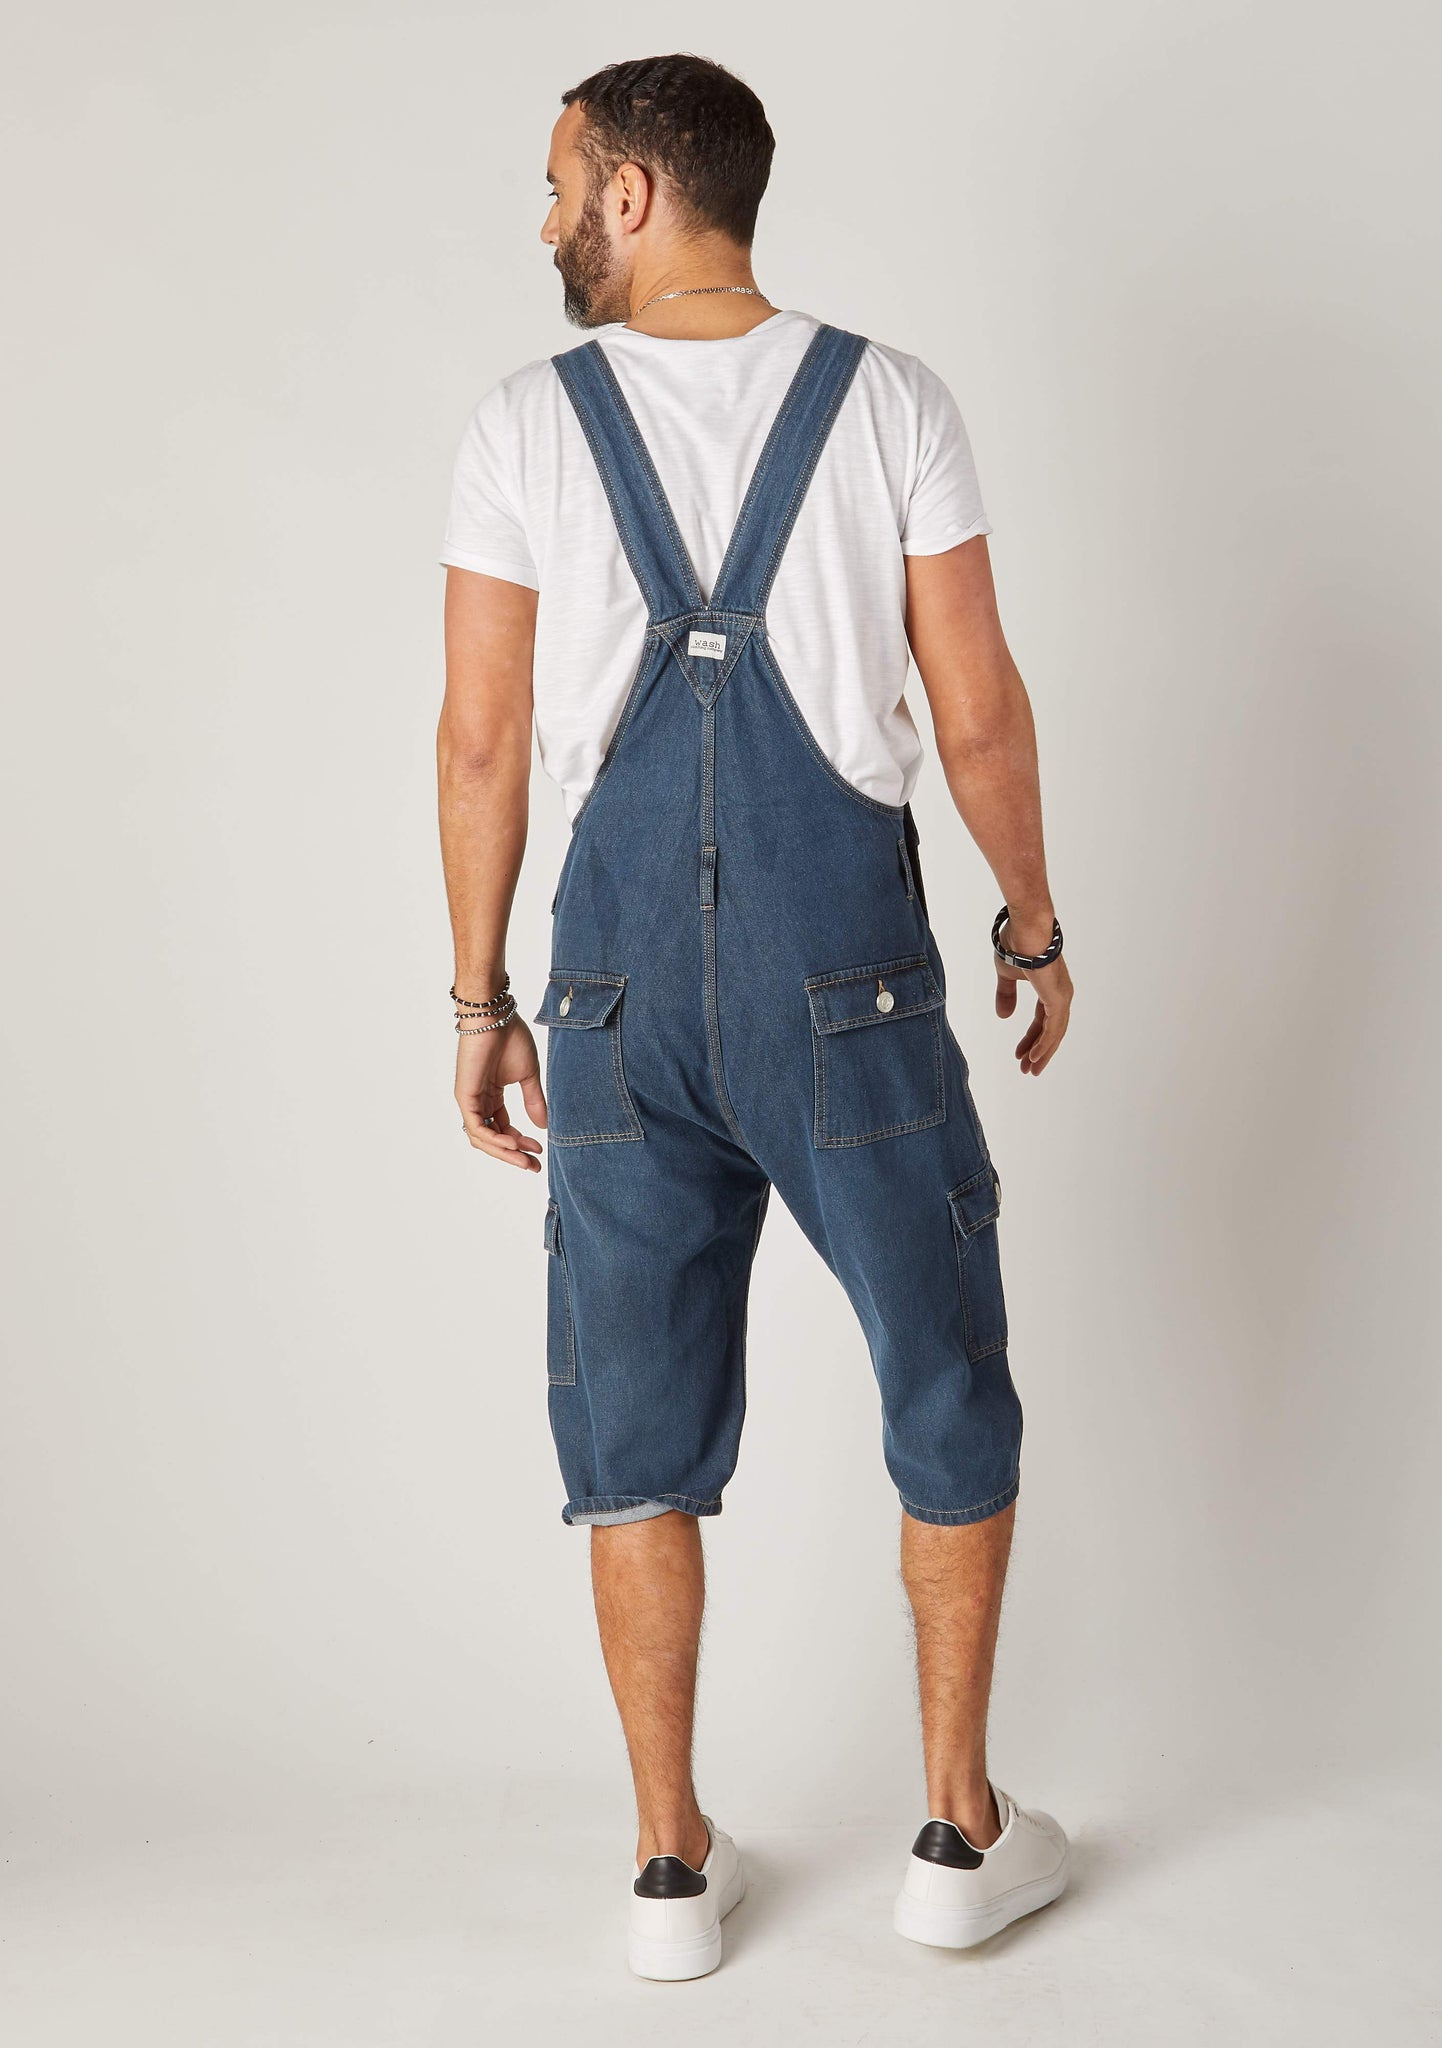 Rear full-length pose men's denim bib-overall cargo shorts showing back pockets and Wash Clothing logo label